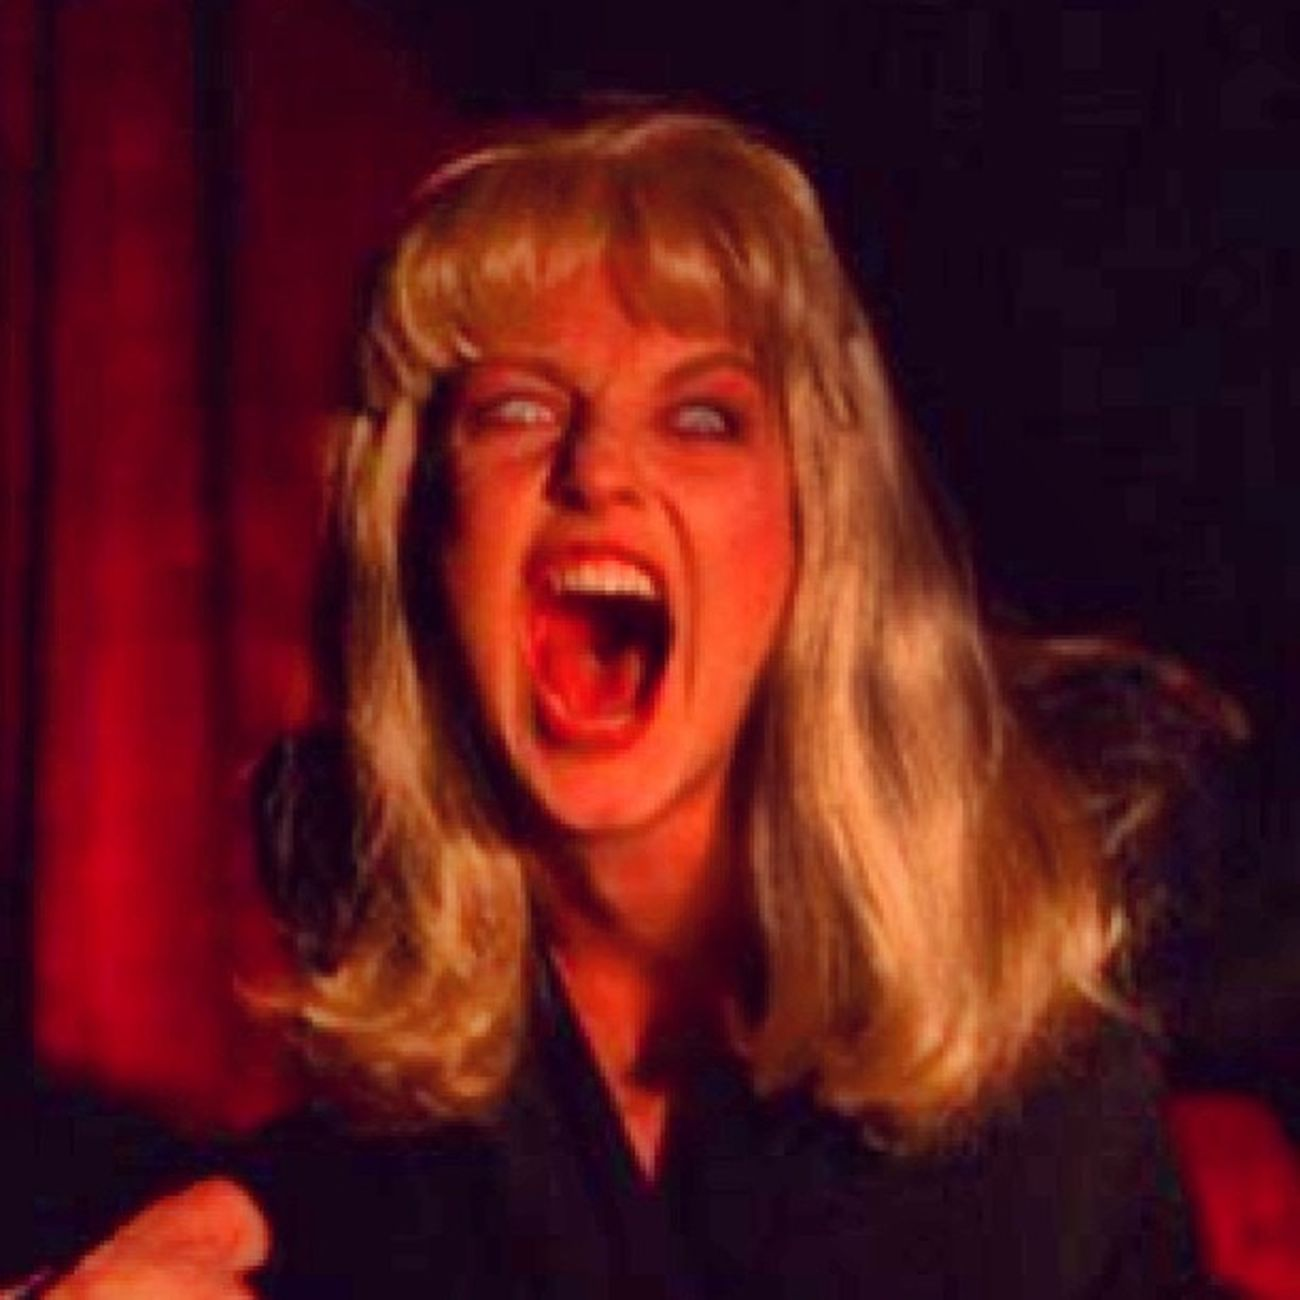 Twinpeaks Laurapalmer Screaming Scream theredroom blacklodge waitingroom